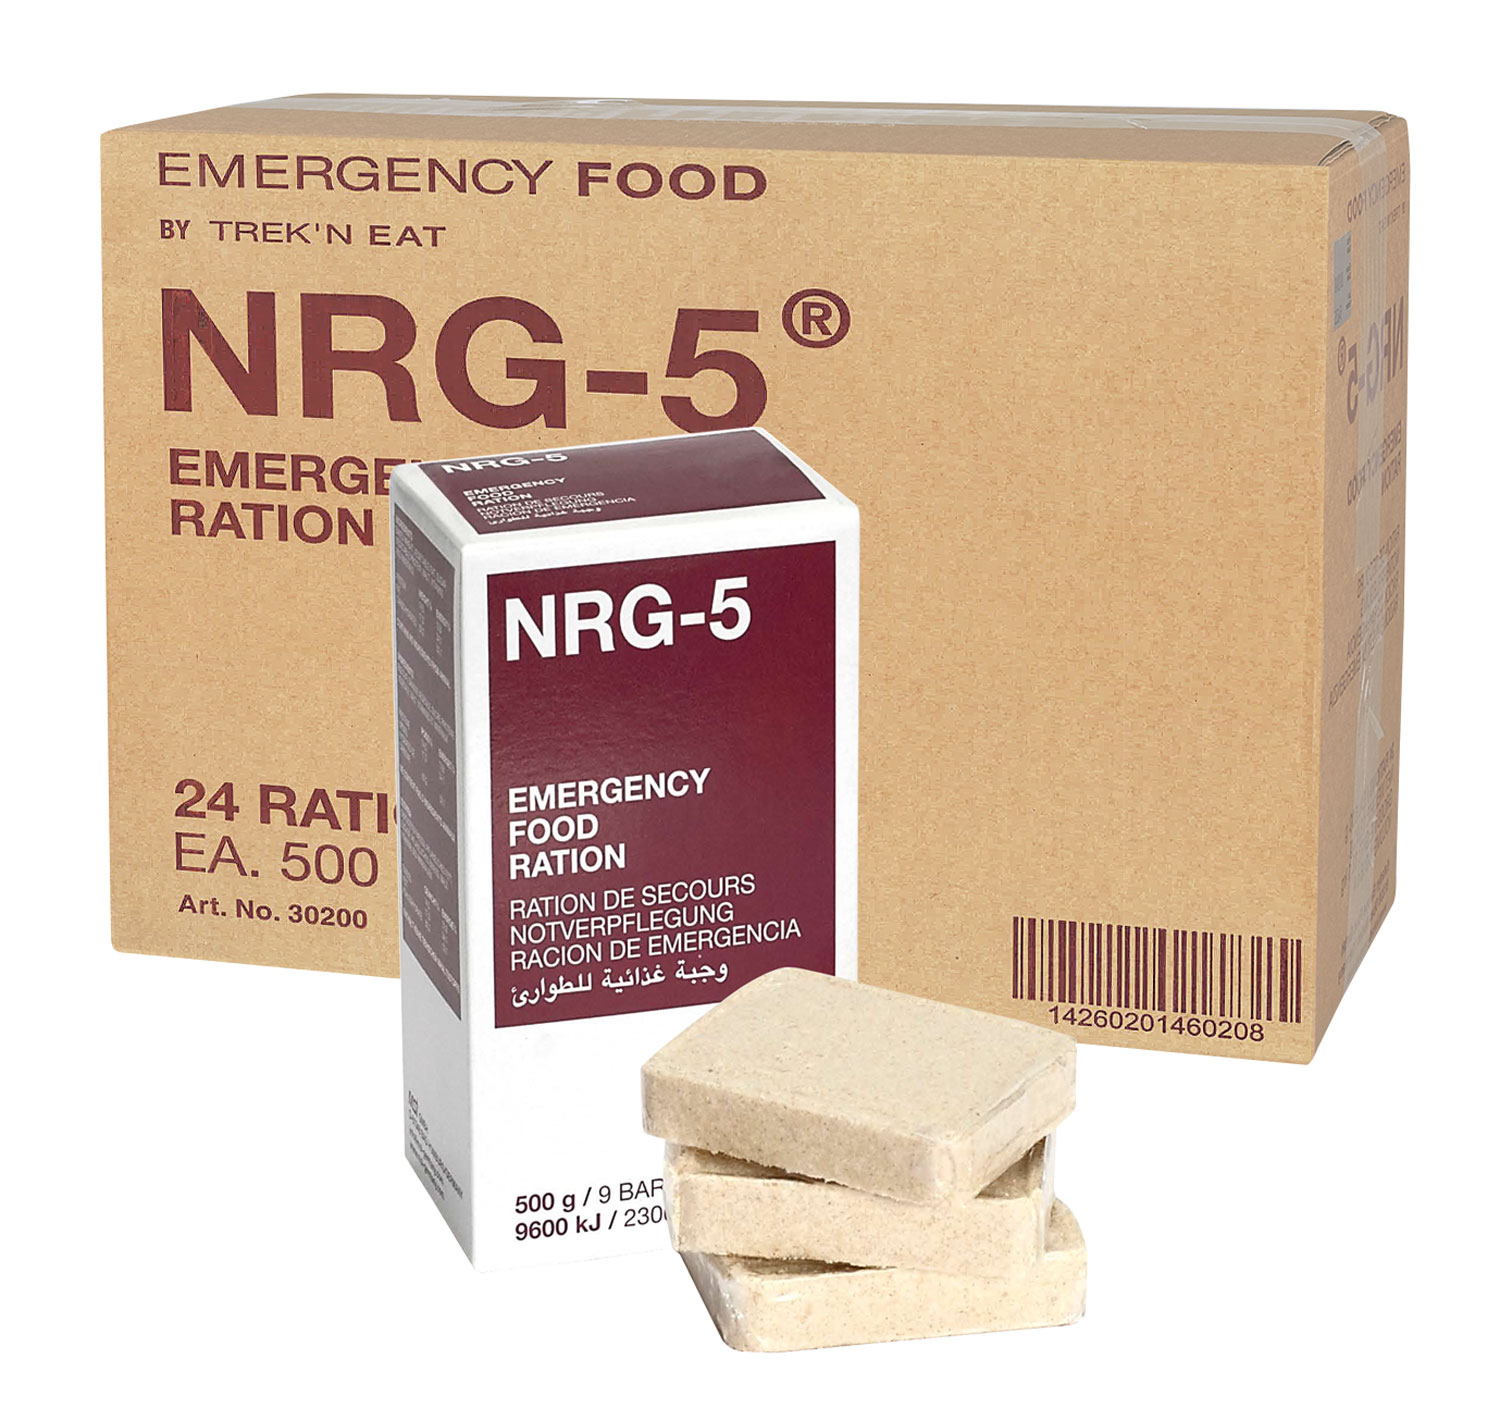 NRG-5 Emergency Food Notration - Karton